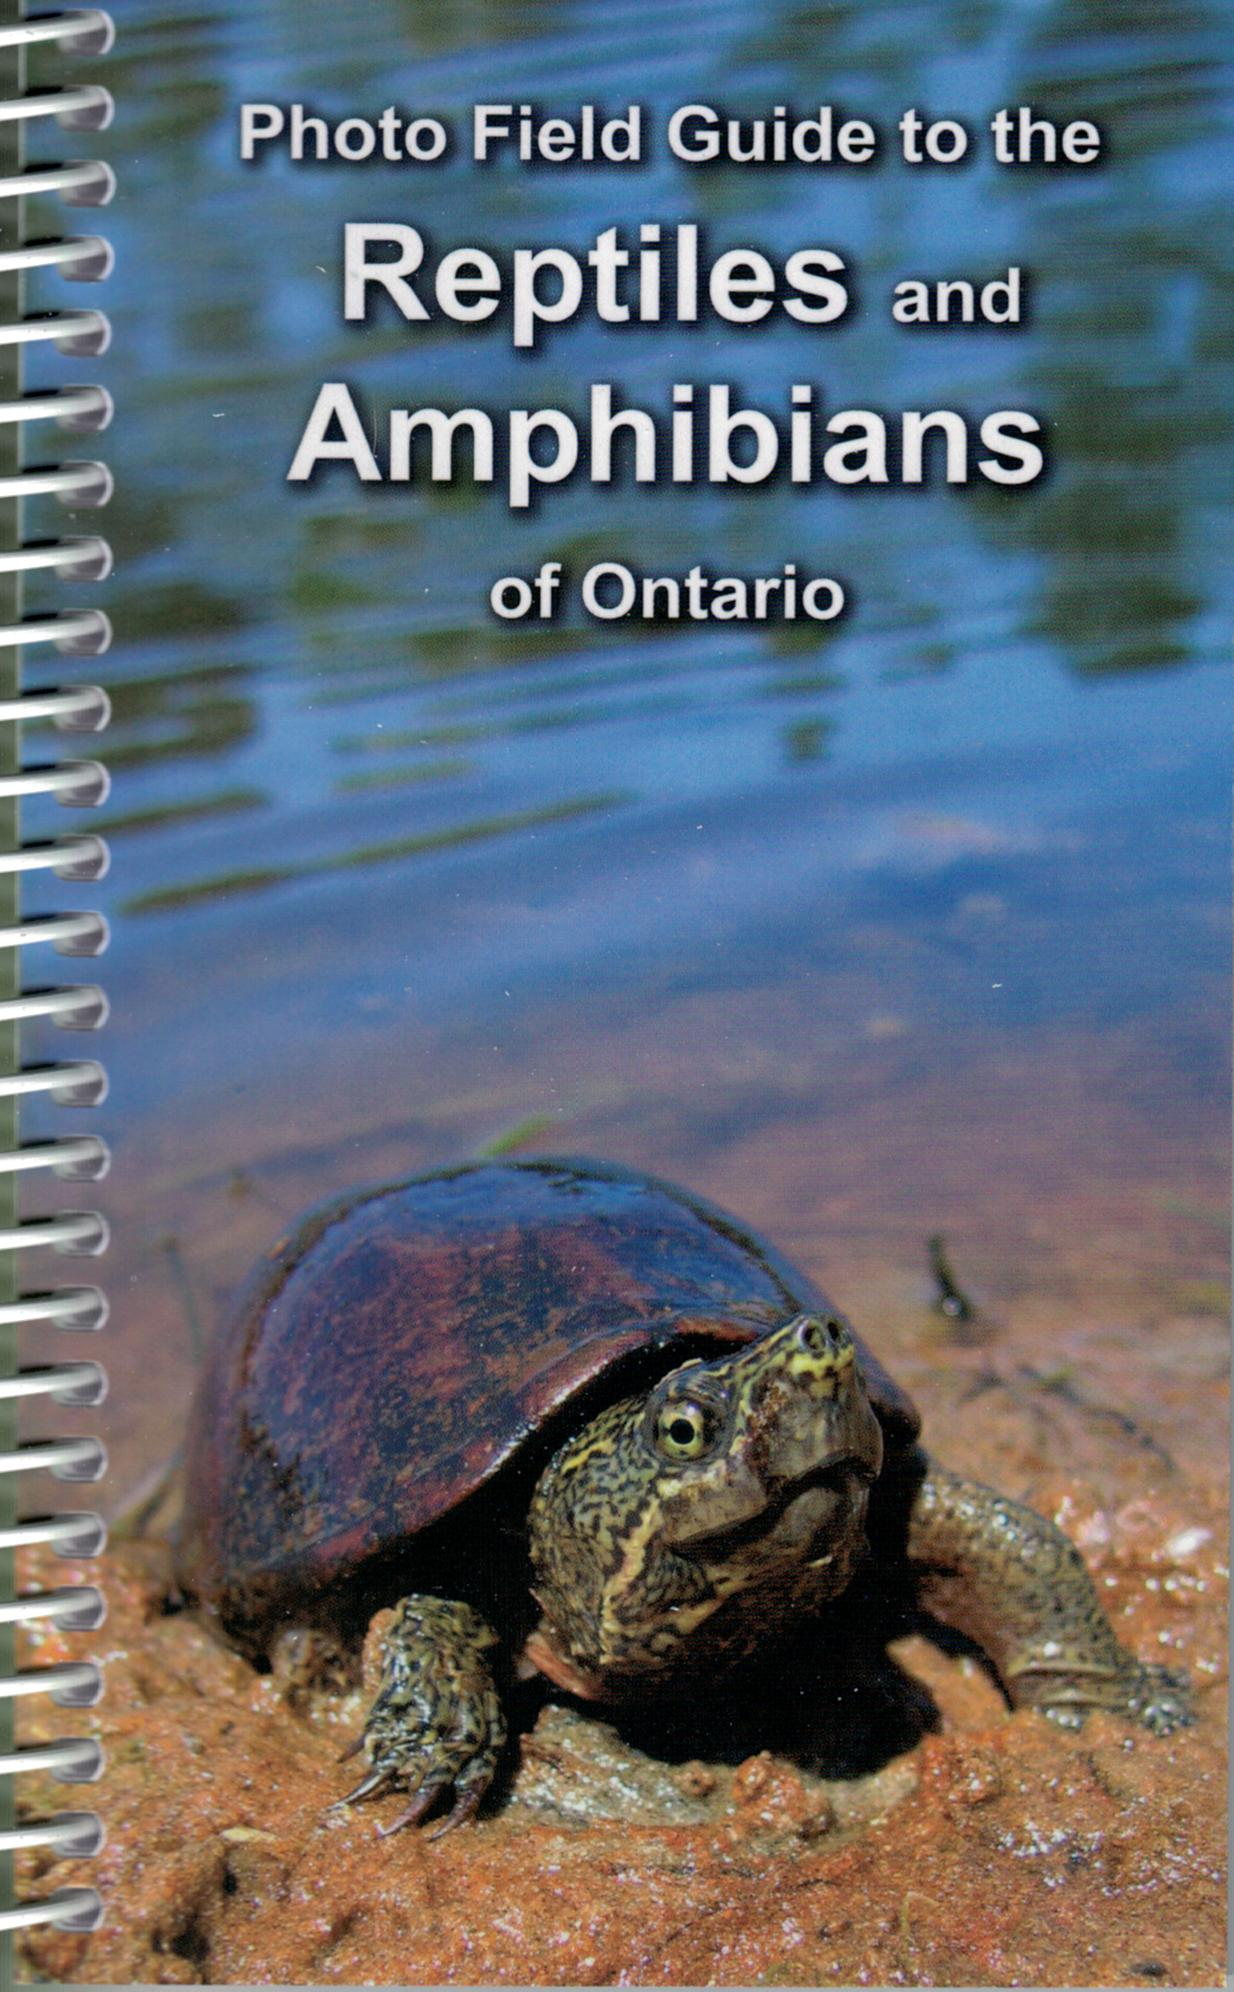 Photo Field Guide to the Reptiles and Amphibians of Ontario